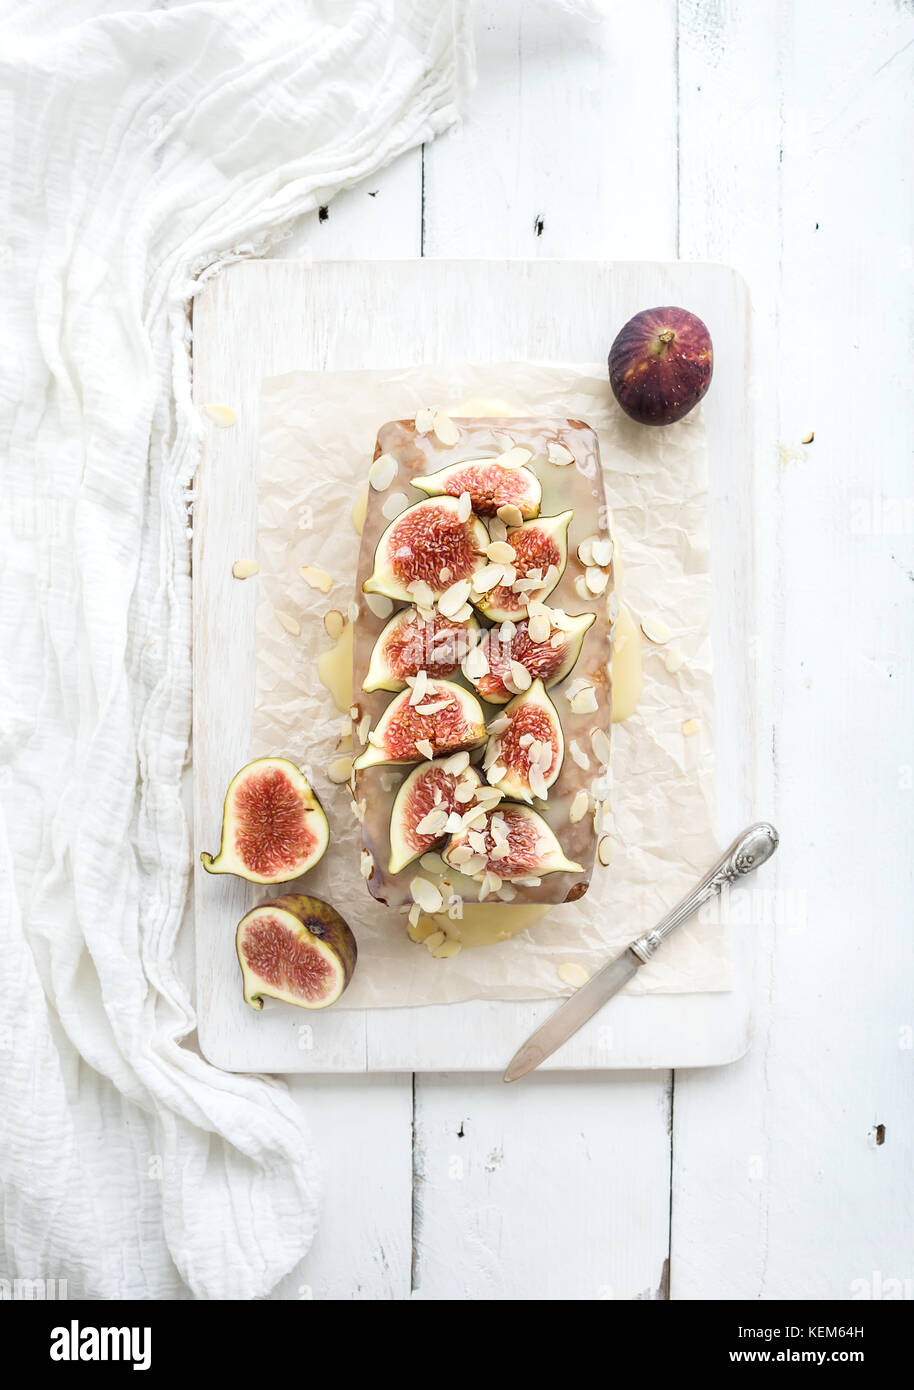 Loaf cake with figs, almond and white chocolate on wooden serving board over light background - Stock Image